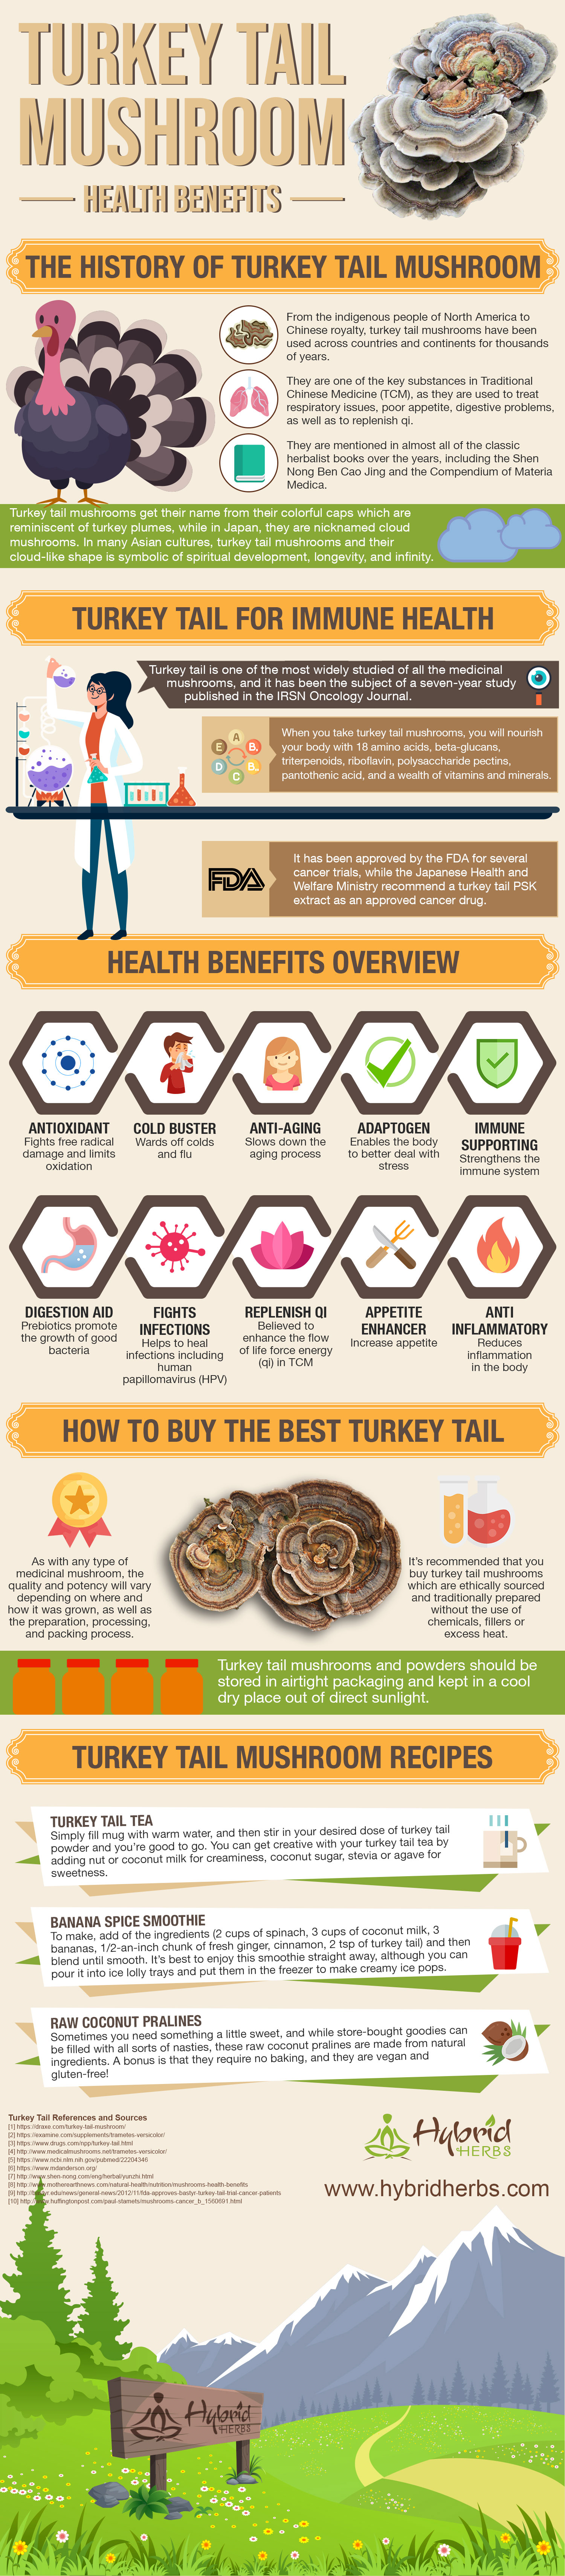 turkey-tail-health-benefits.jpg